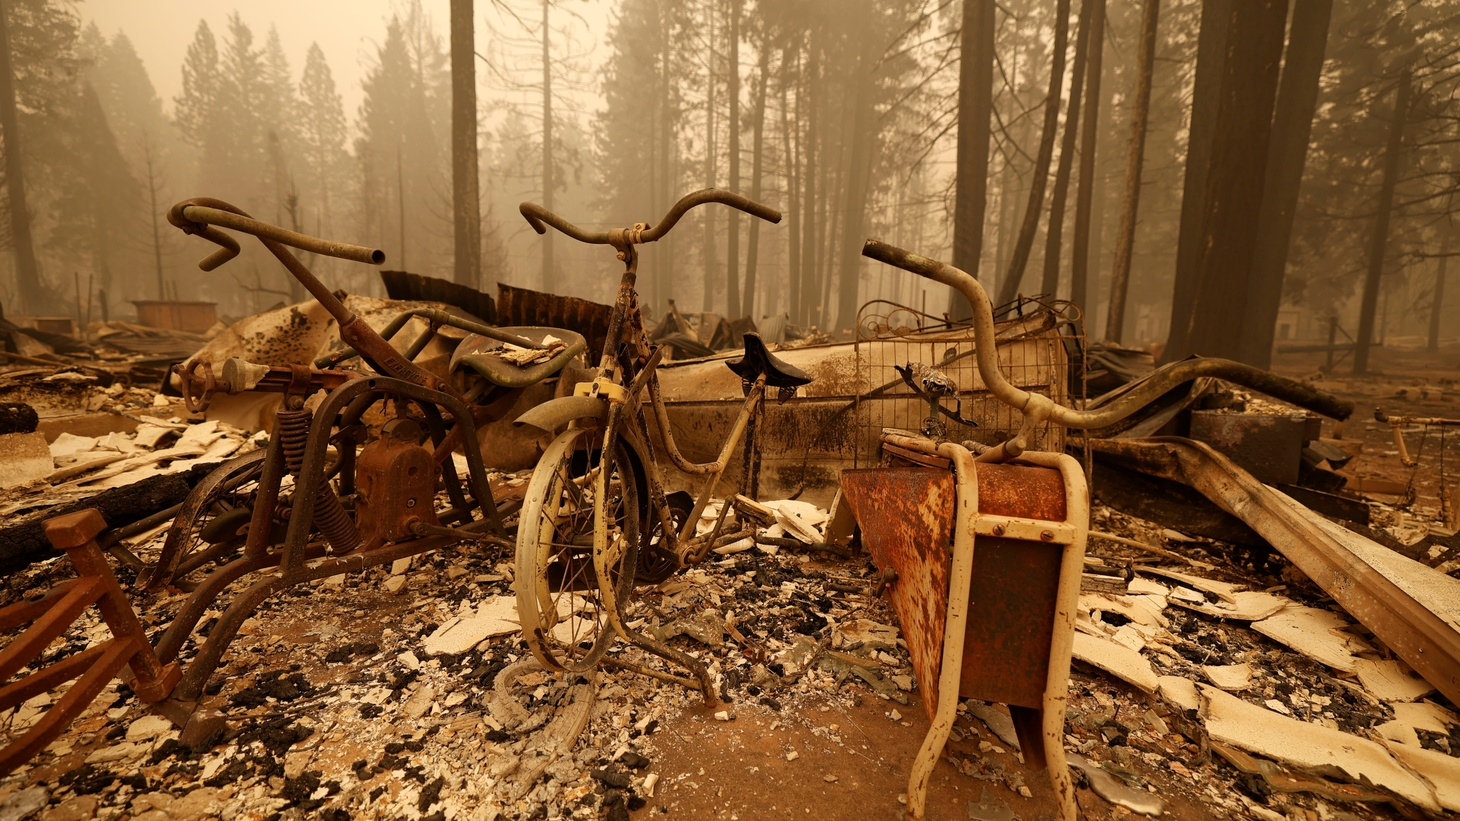 Burned exercise bicycles are seen after the passing of the Dixie Fire, a wildfire near the town of Canyondam, California, U.S. August 7, 2021.